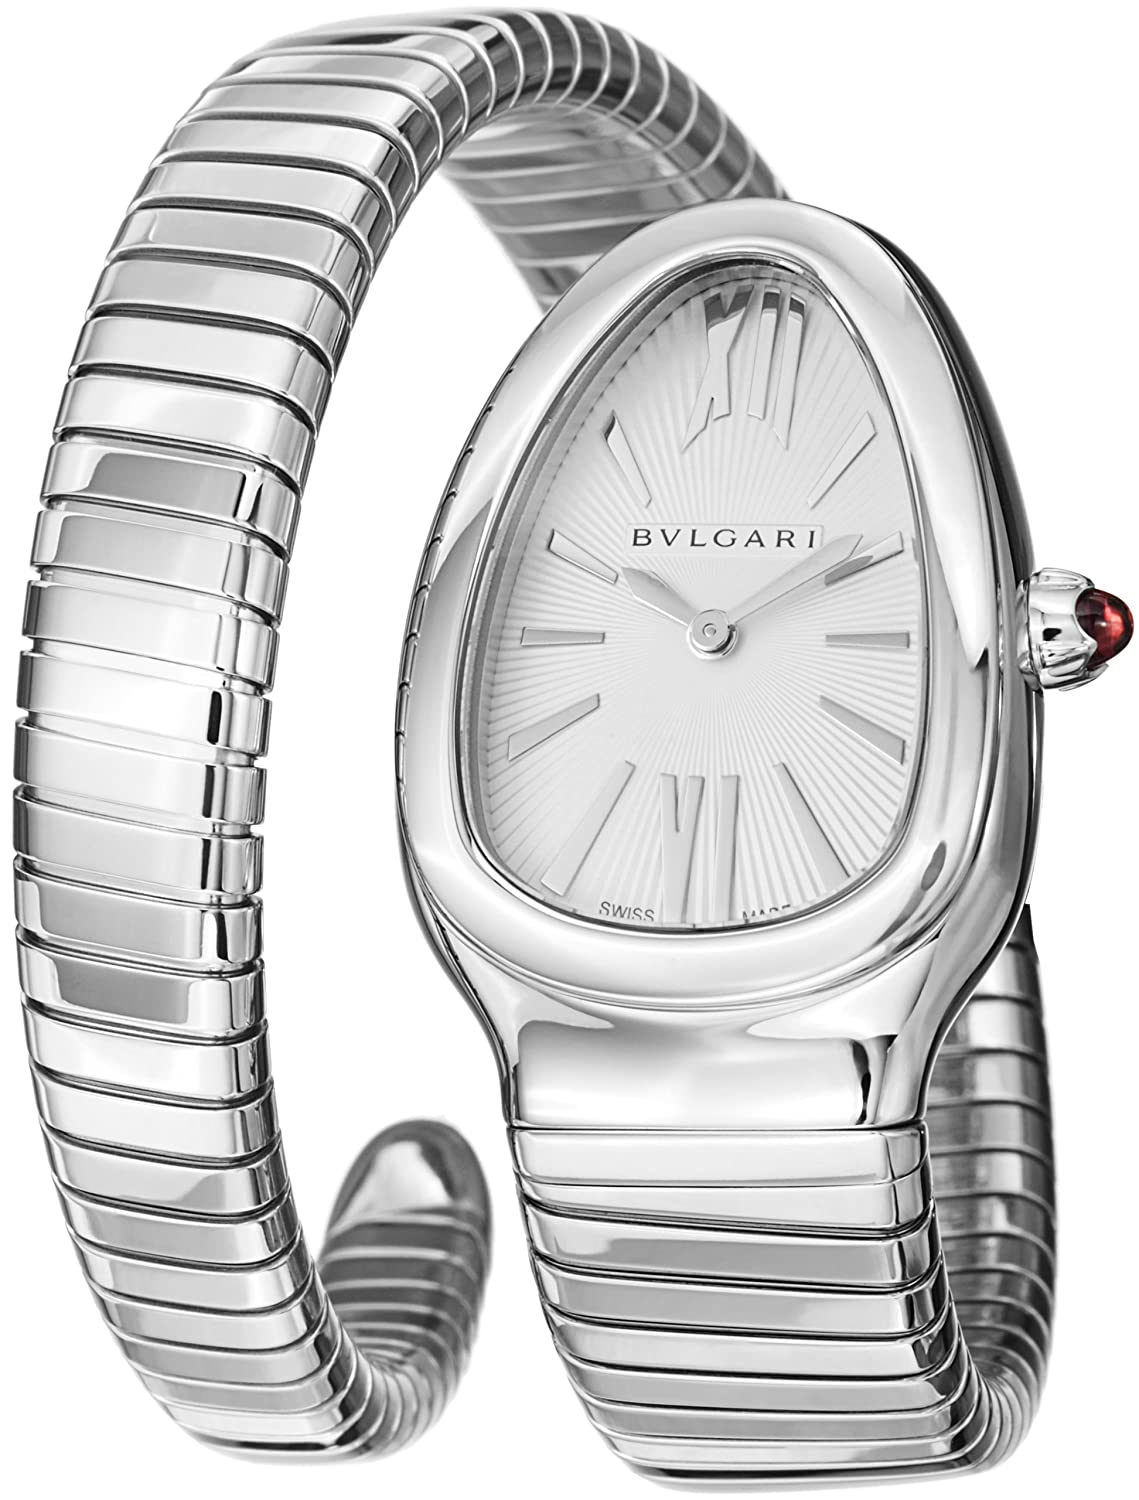 Amazon.com: Bvlgari Serpenti Ladies Silver Face Watch SP35C6SS.1T: Bvlgari: Watches